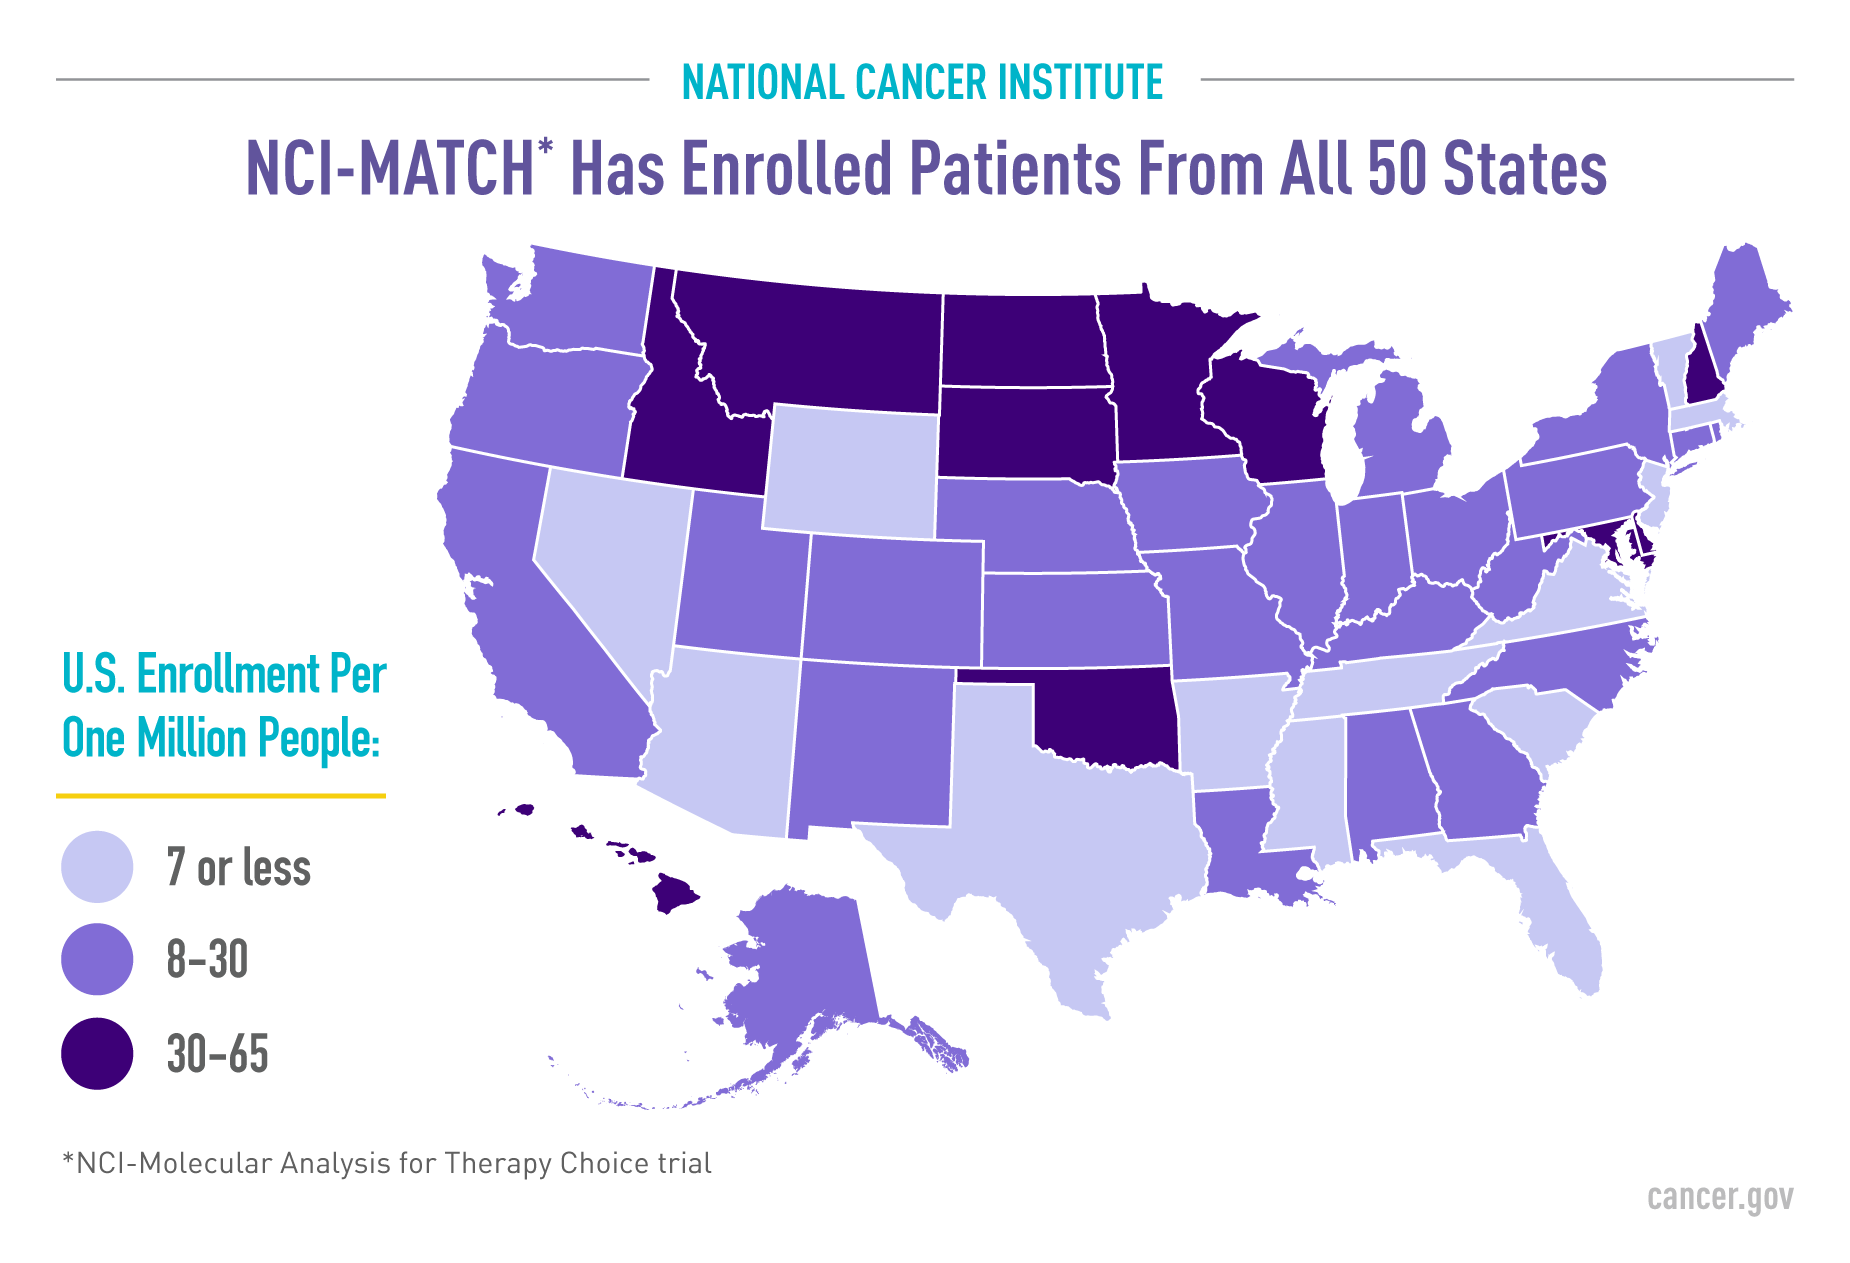 This map shows enrollment in N C I-MATCH has enrolled patients from all 50 states.